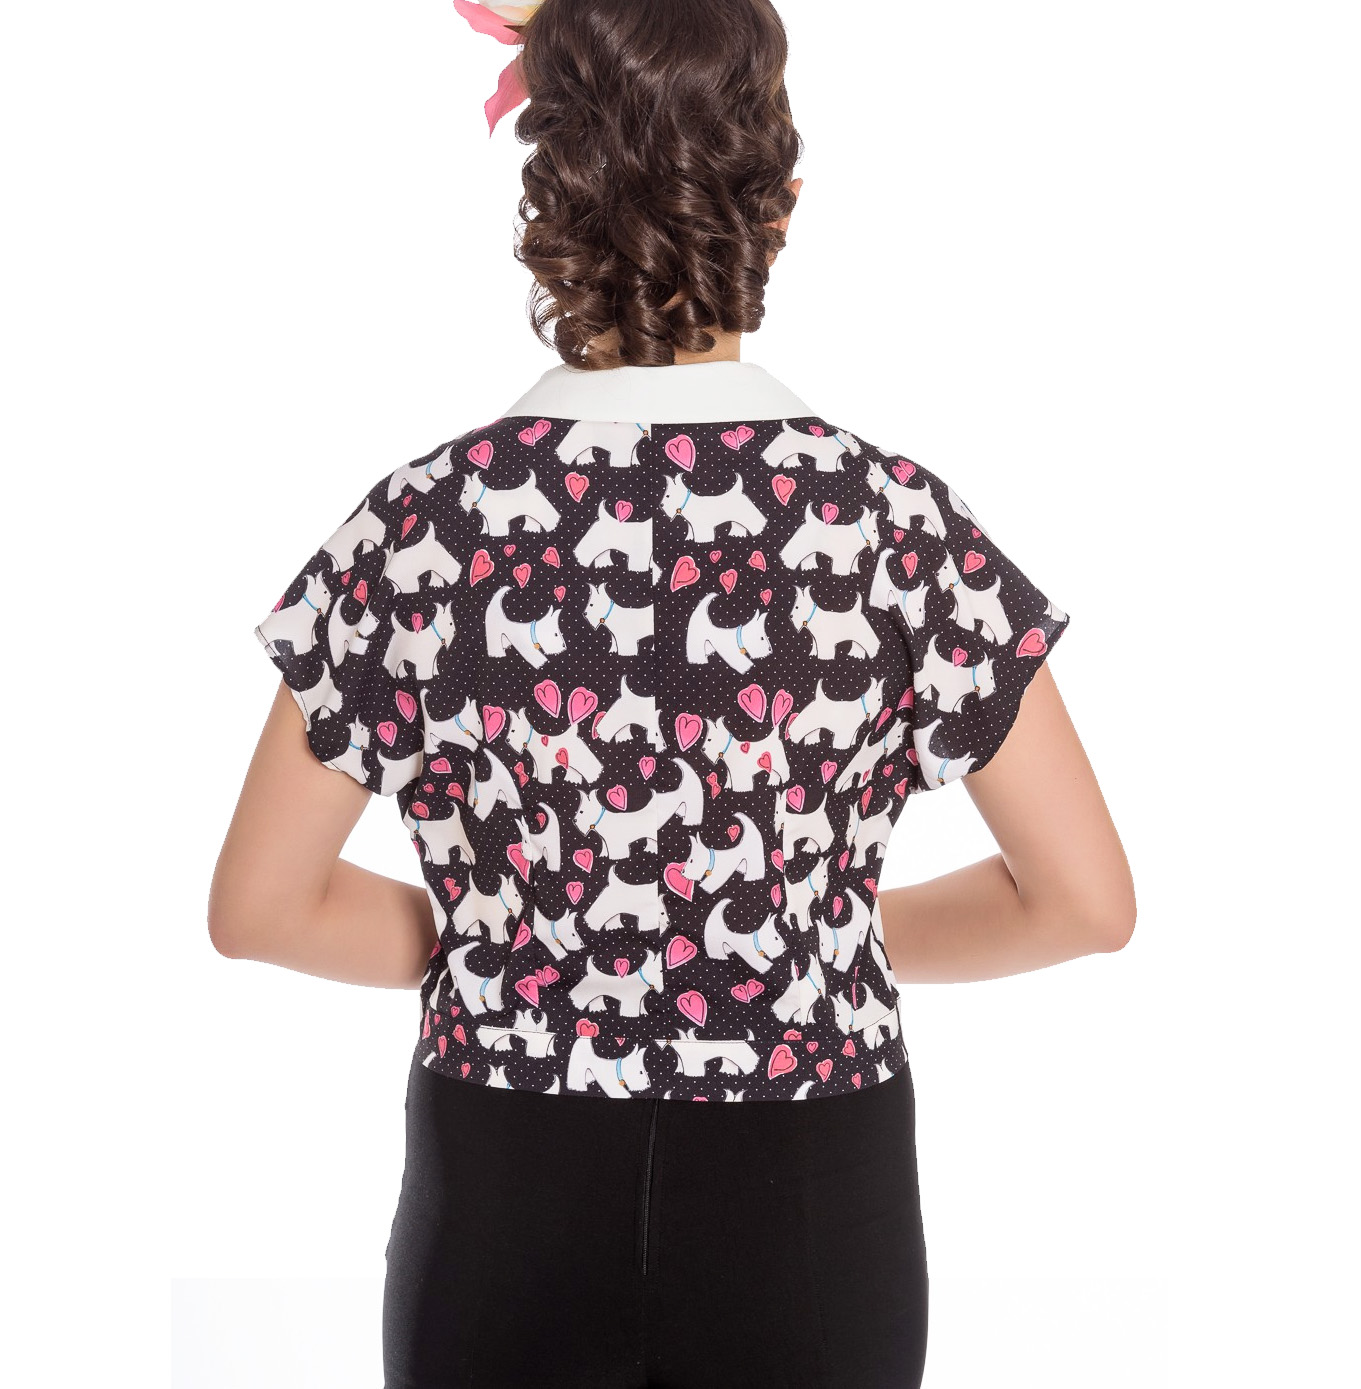 Hell-Bunny-50s-Retro-Top-Scottie-Dog-Heart-AGGY-Cropped-Blouse-Shirt-All-Sizes thumbnail 21